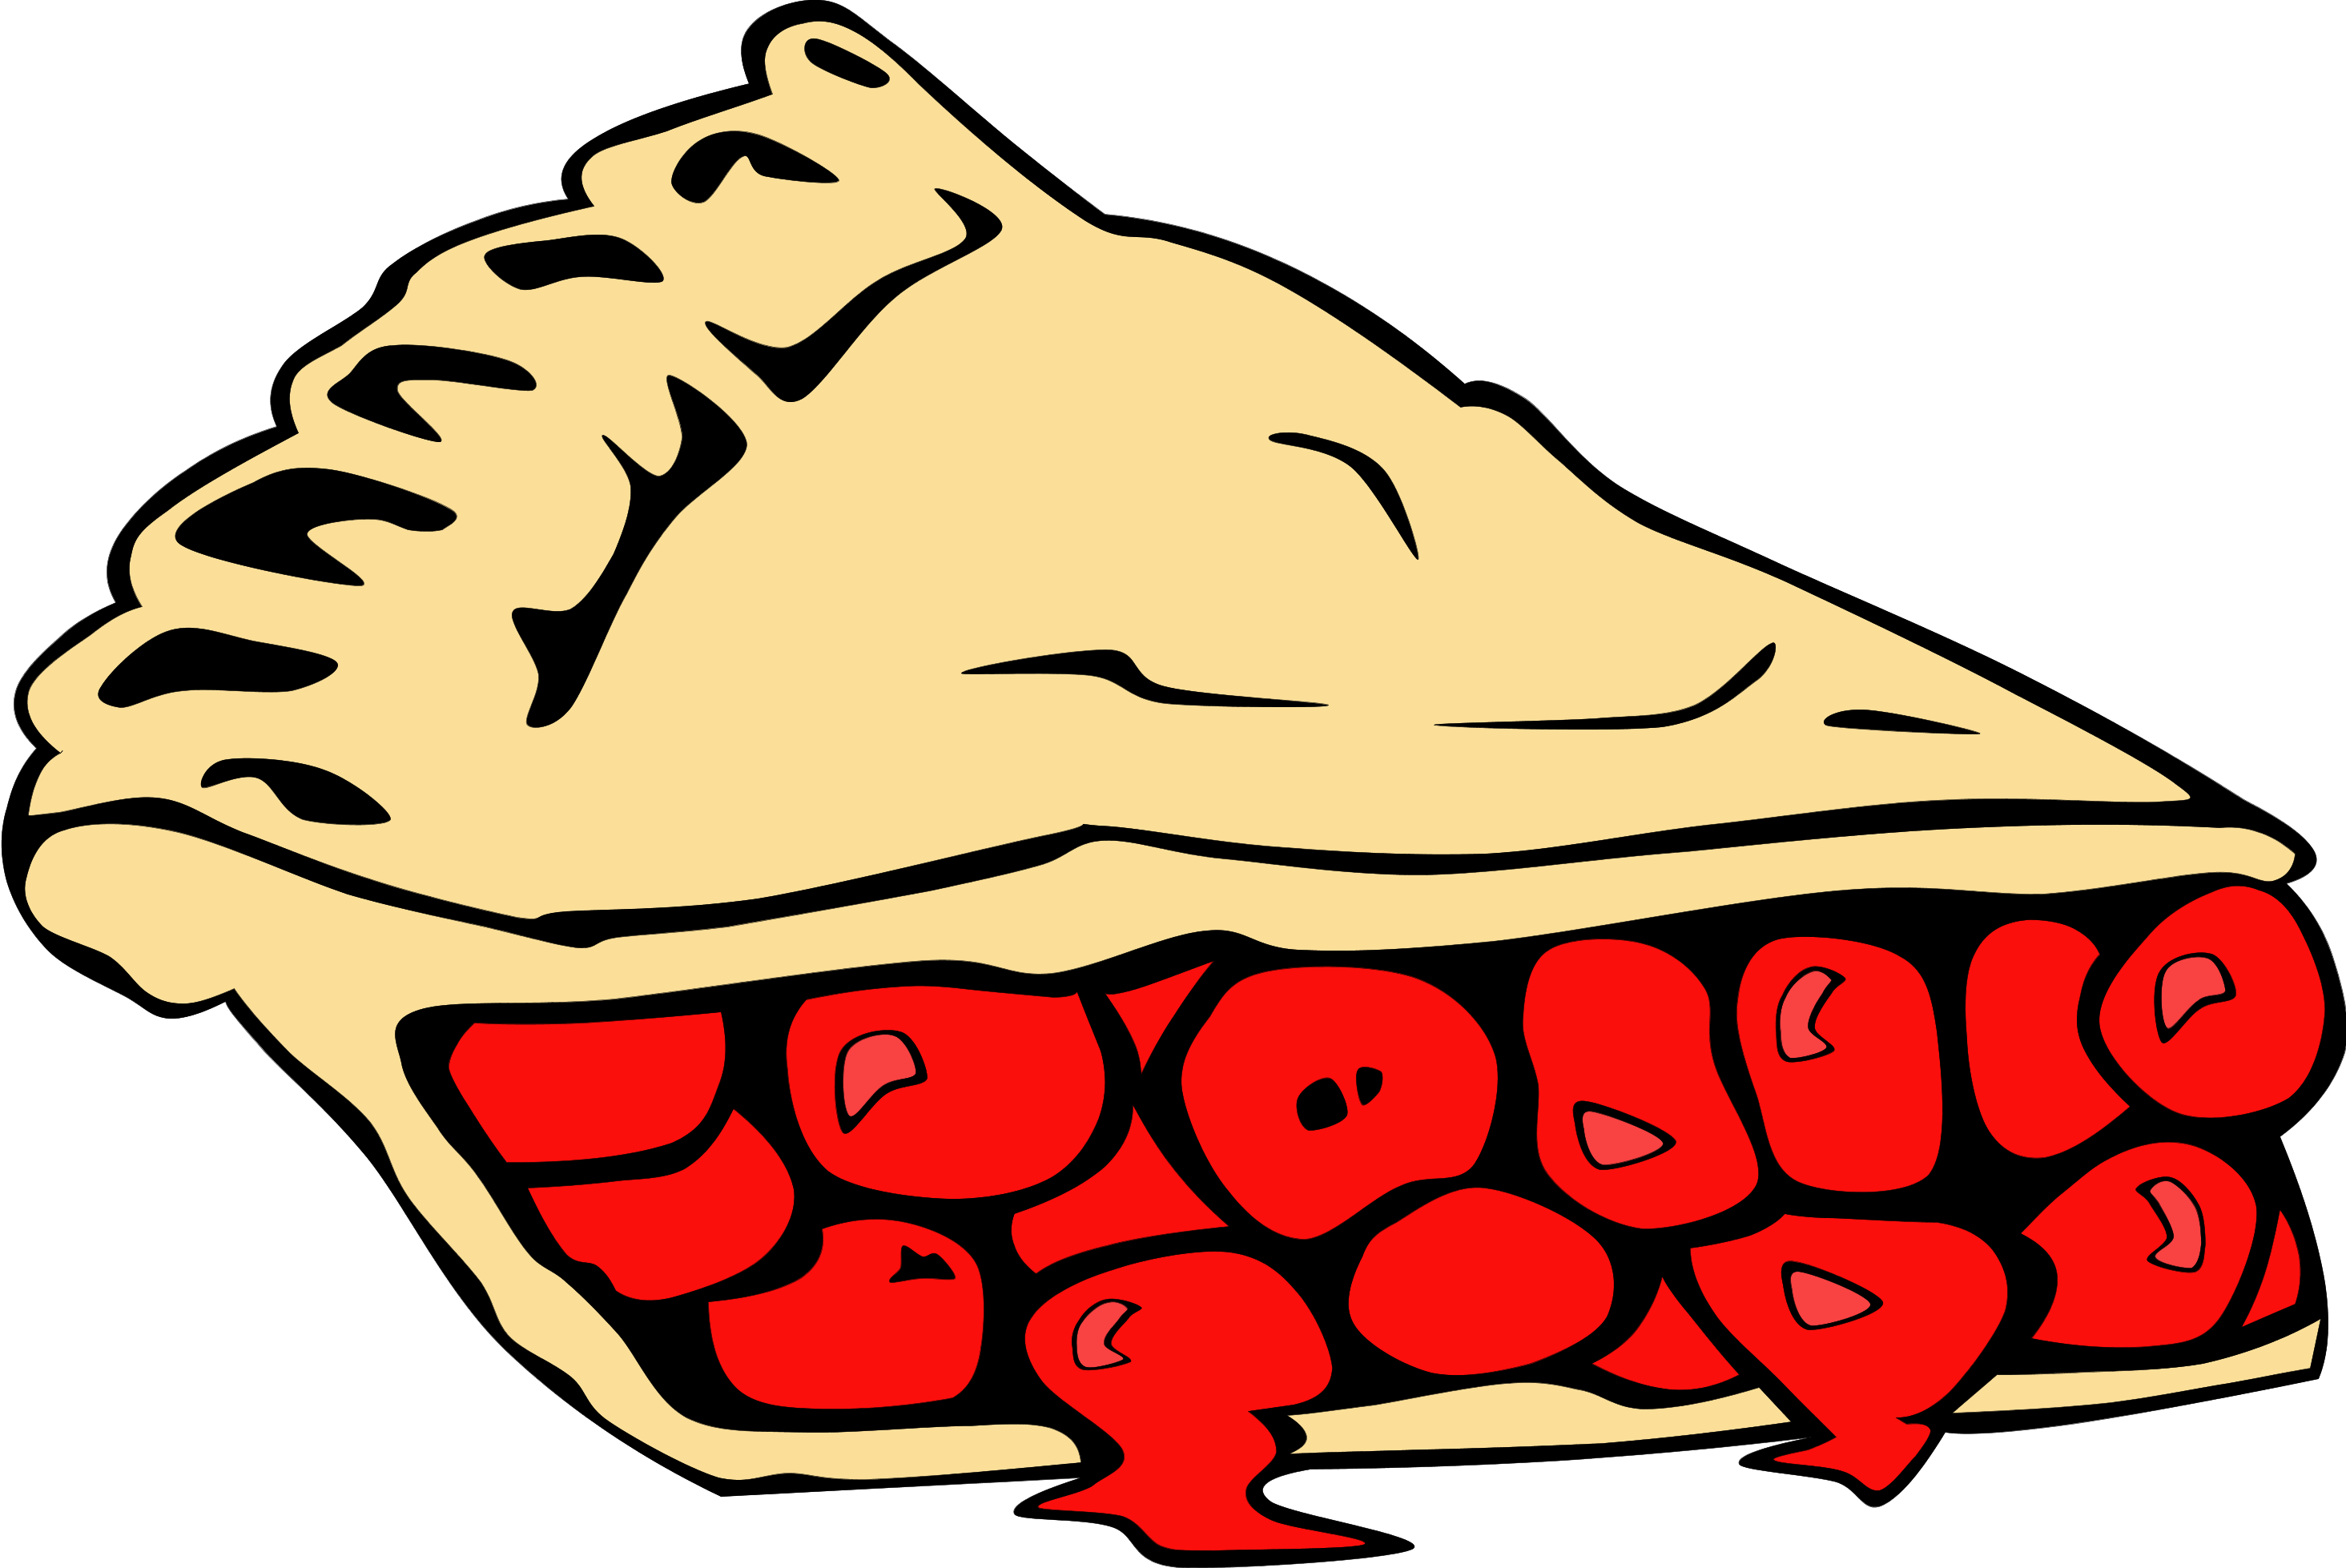 Pie clipart #7, Download drawings